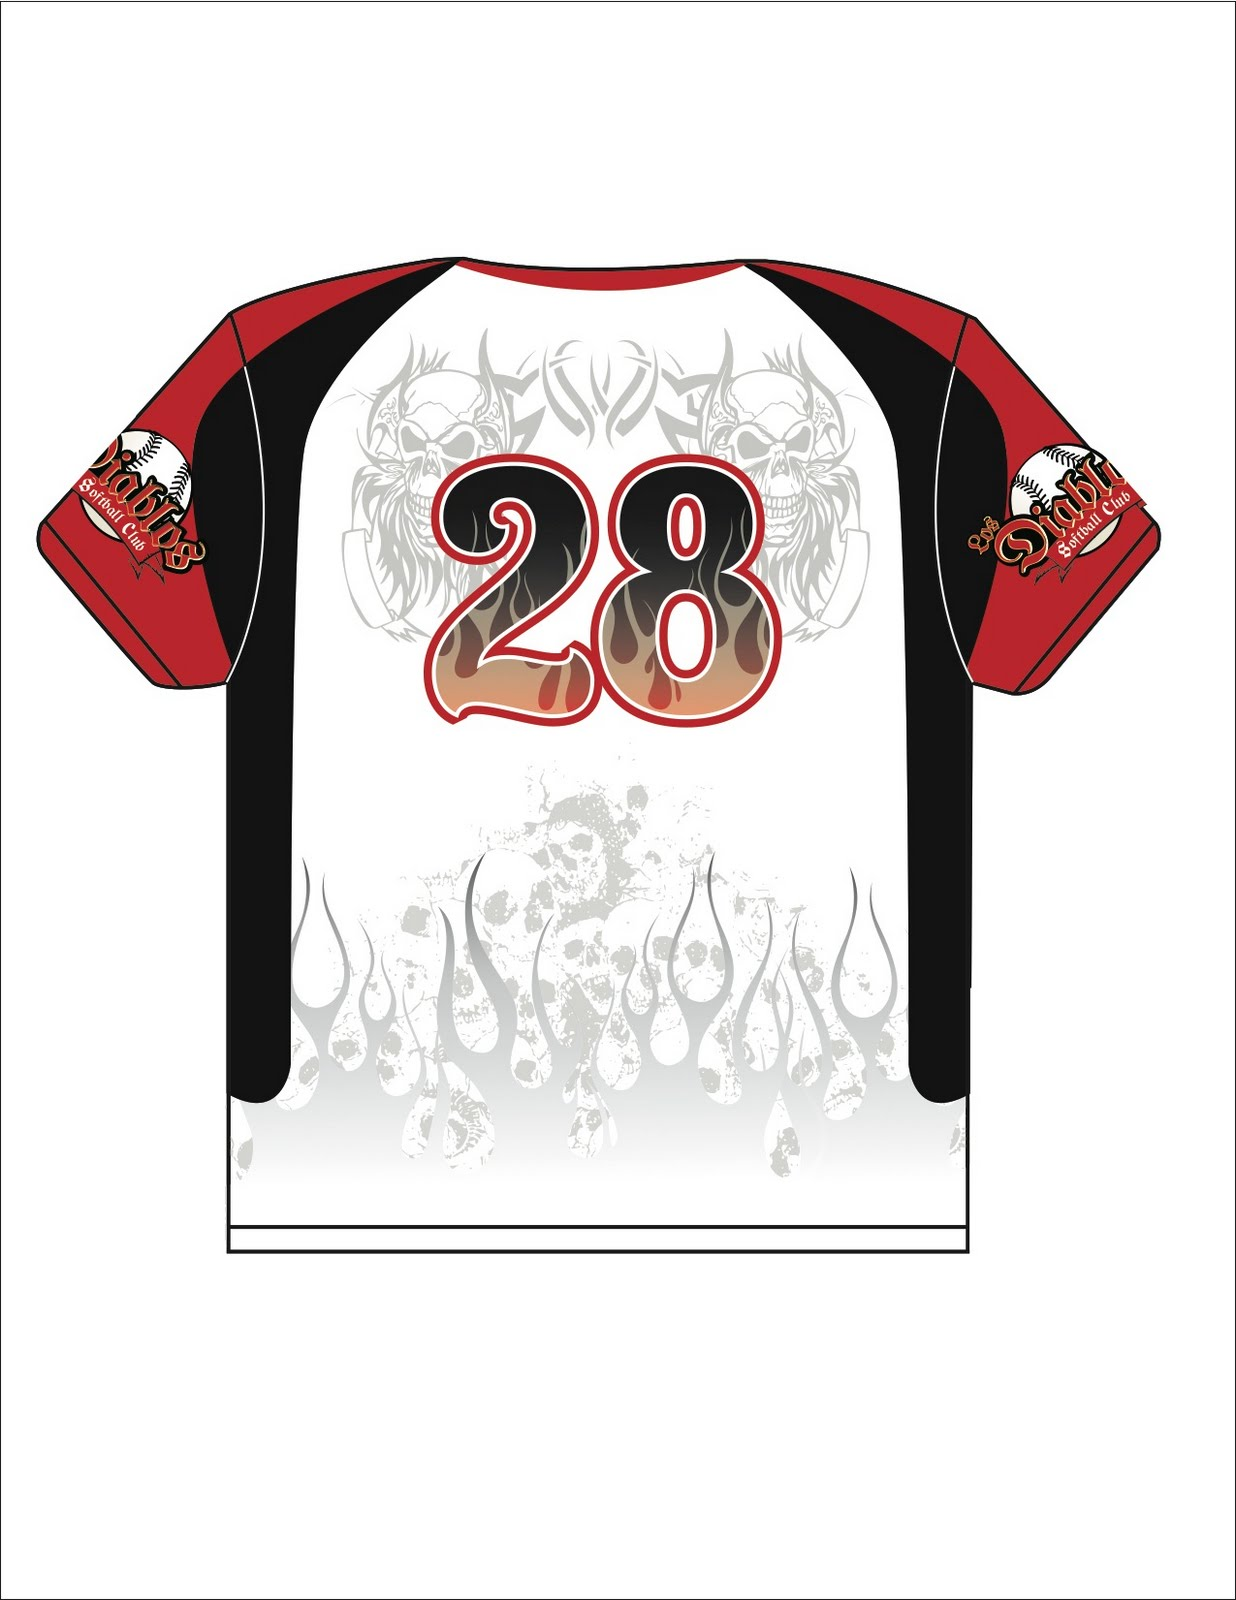 softball uniform design templates - softball jersey design template alex herrera graphic